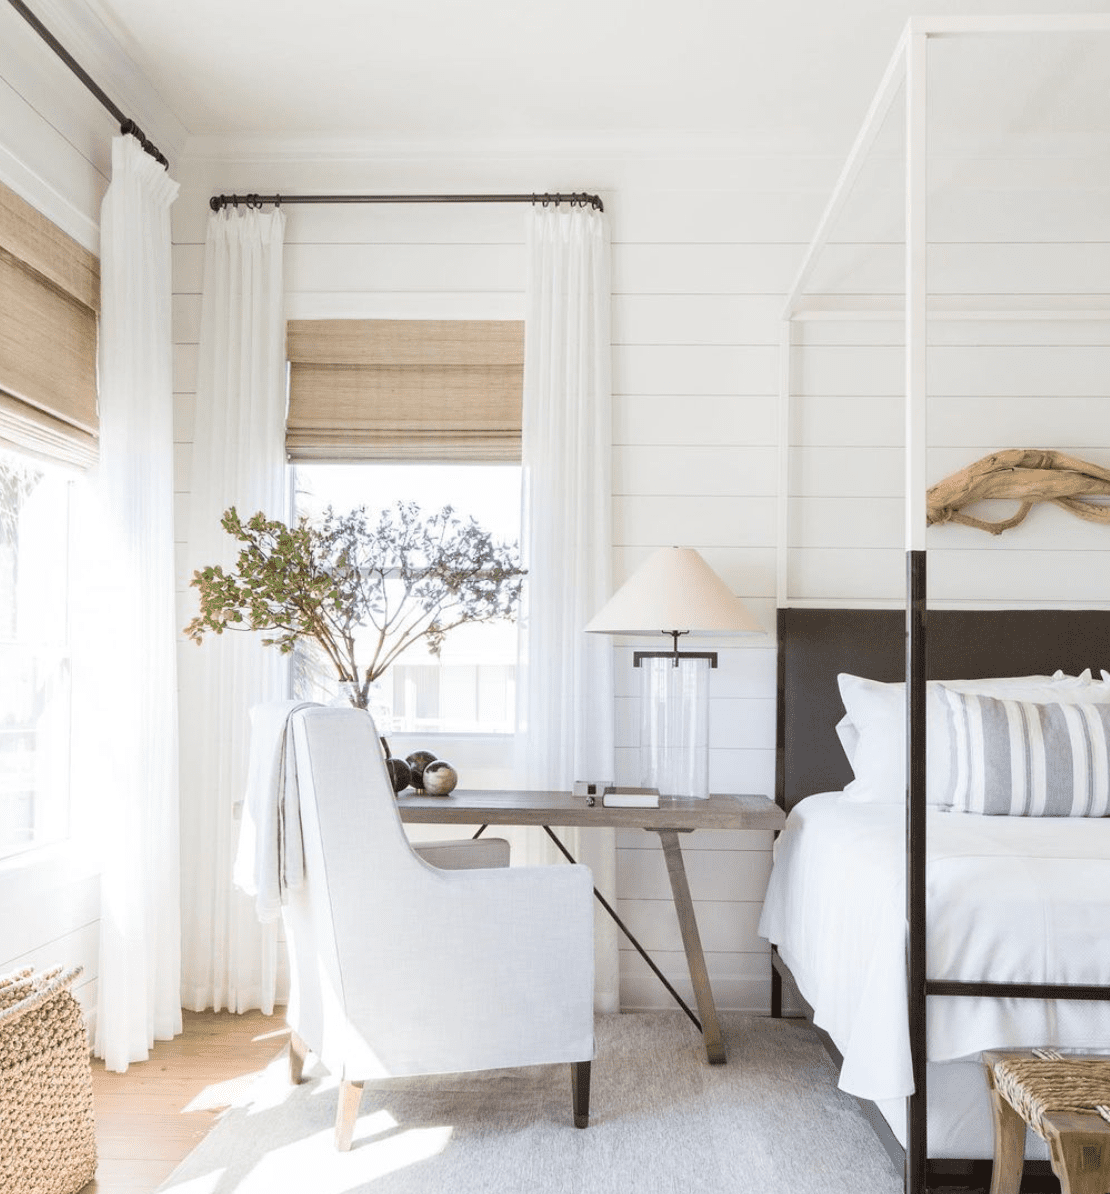 All White Bedroom with walls and trim painted white